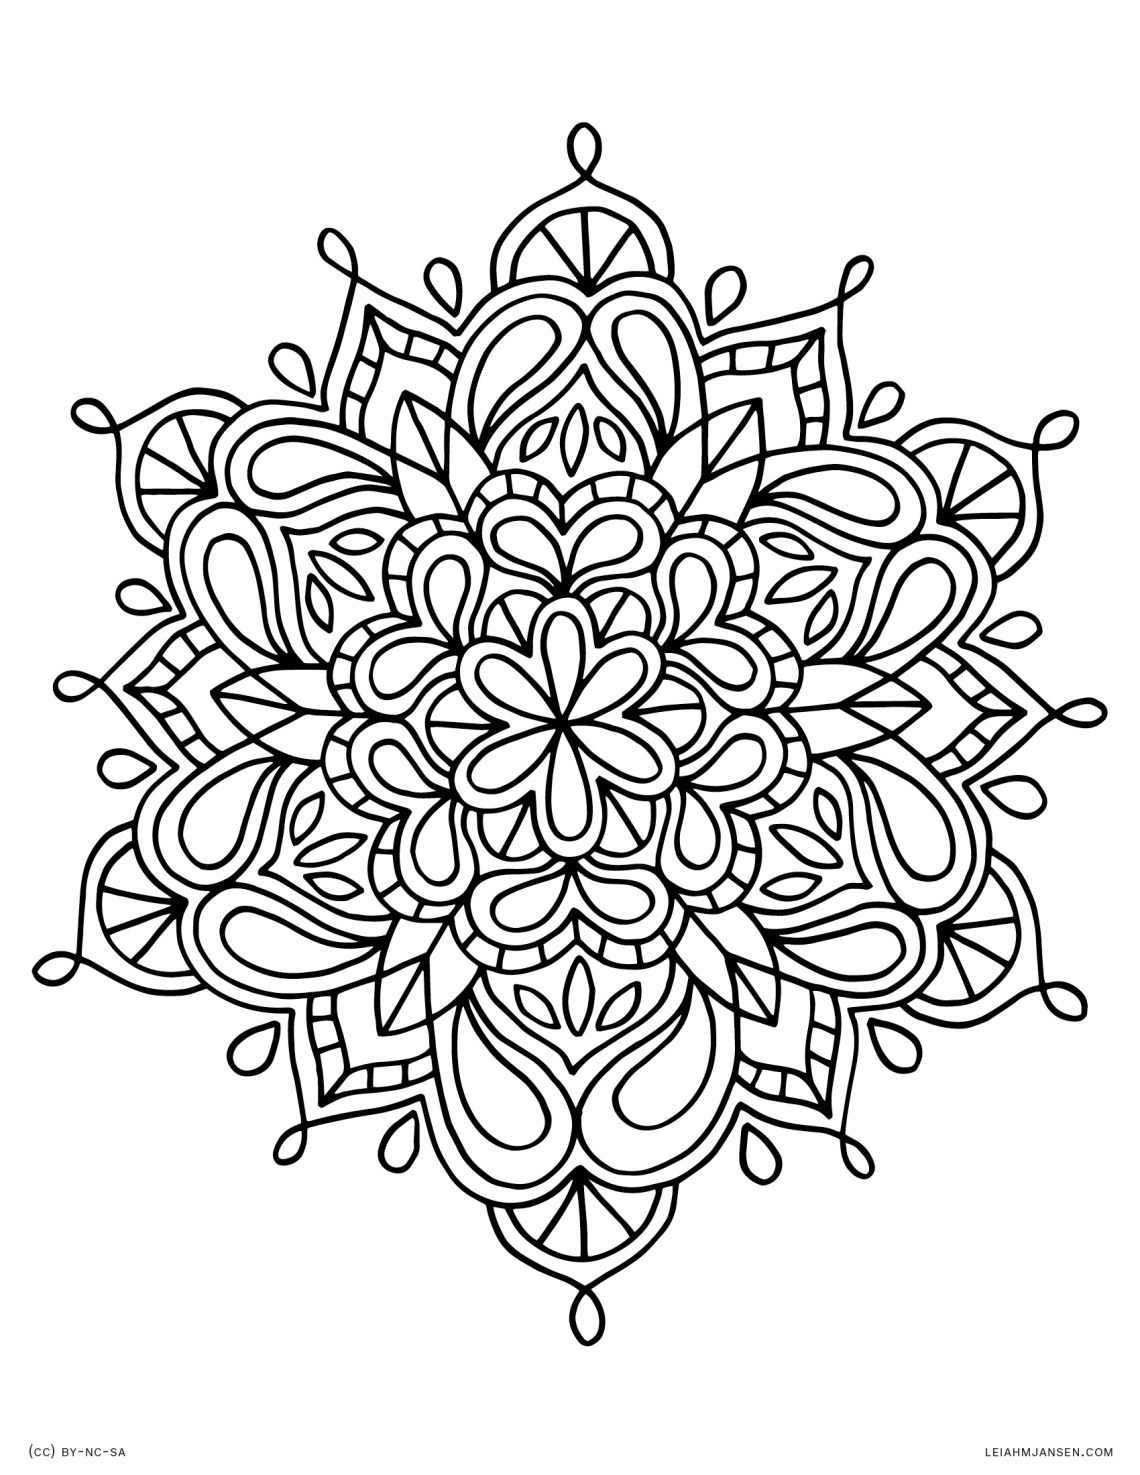 Coloring Pages | free printable mandala coloring pages for adults